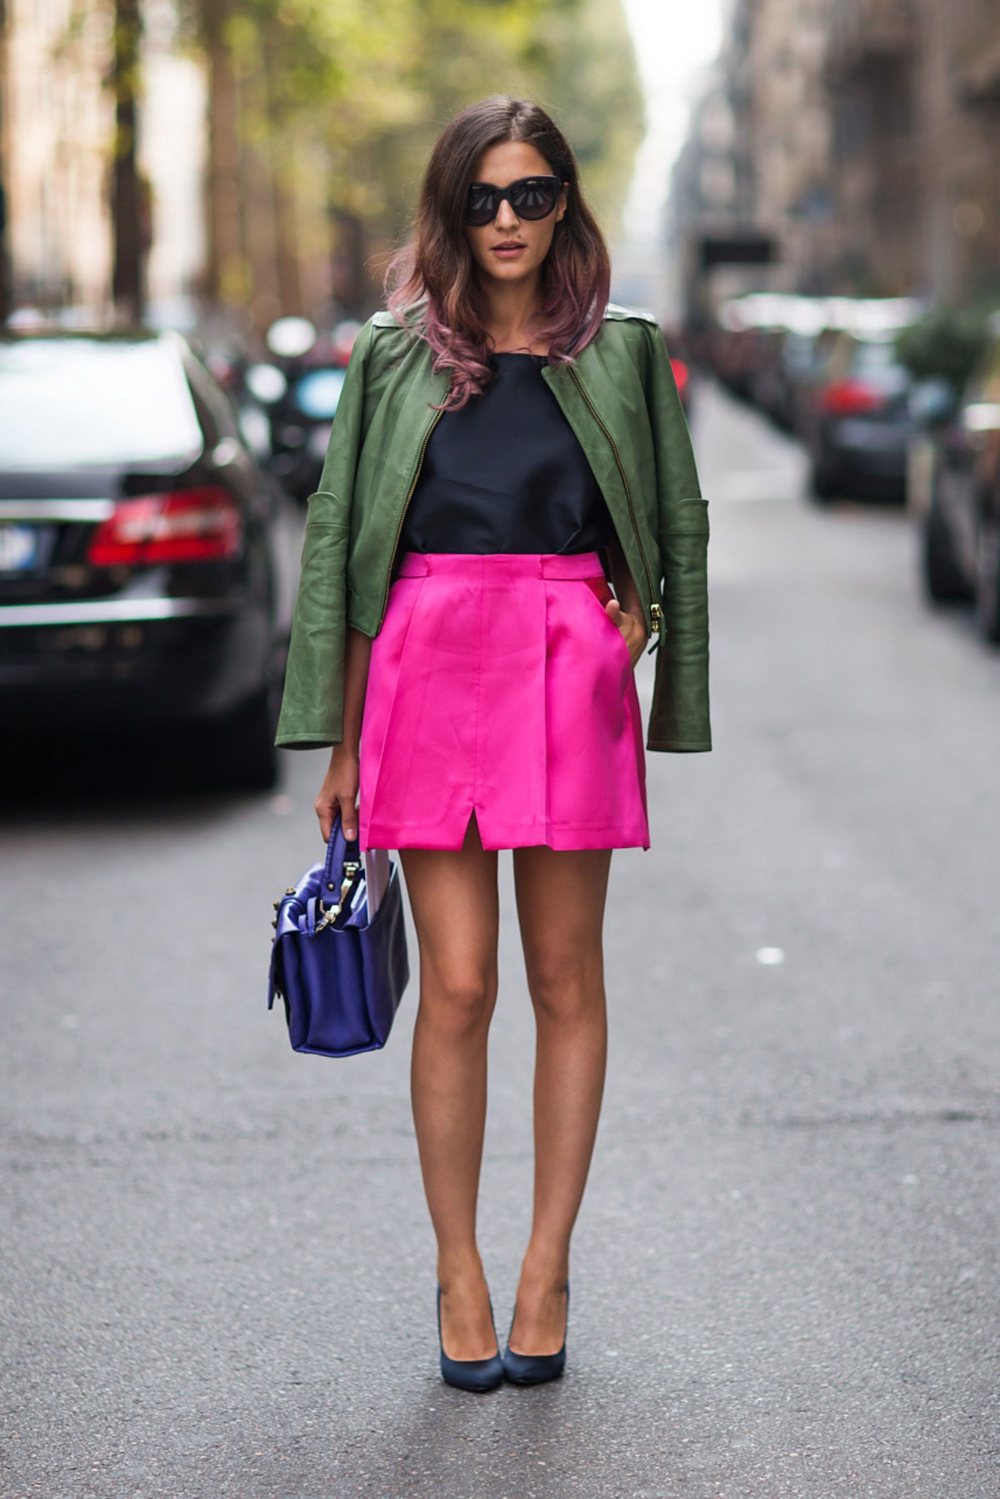 How to Wear Bright Color in The Fall and Winter: New Color Combinations to Try